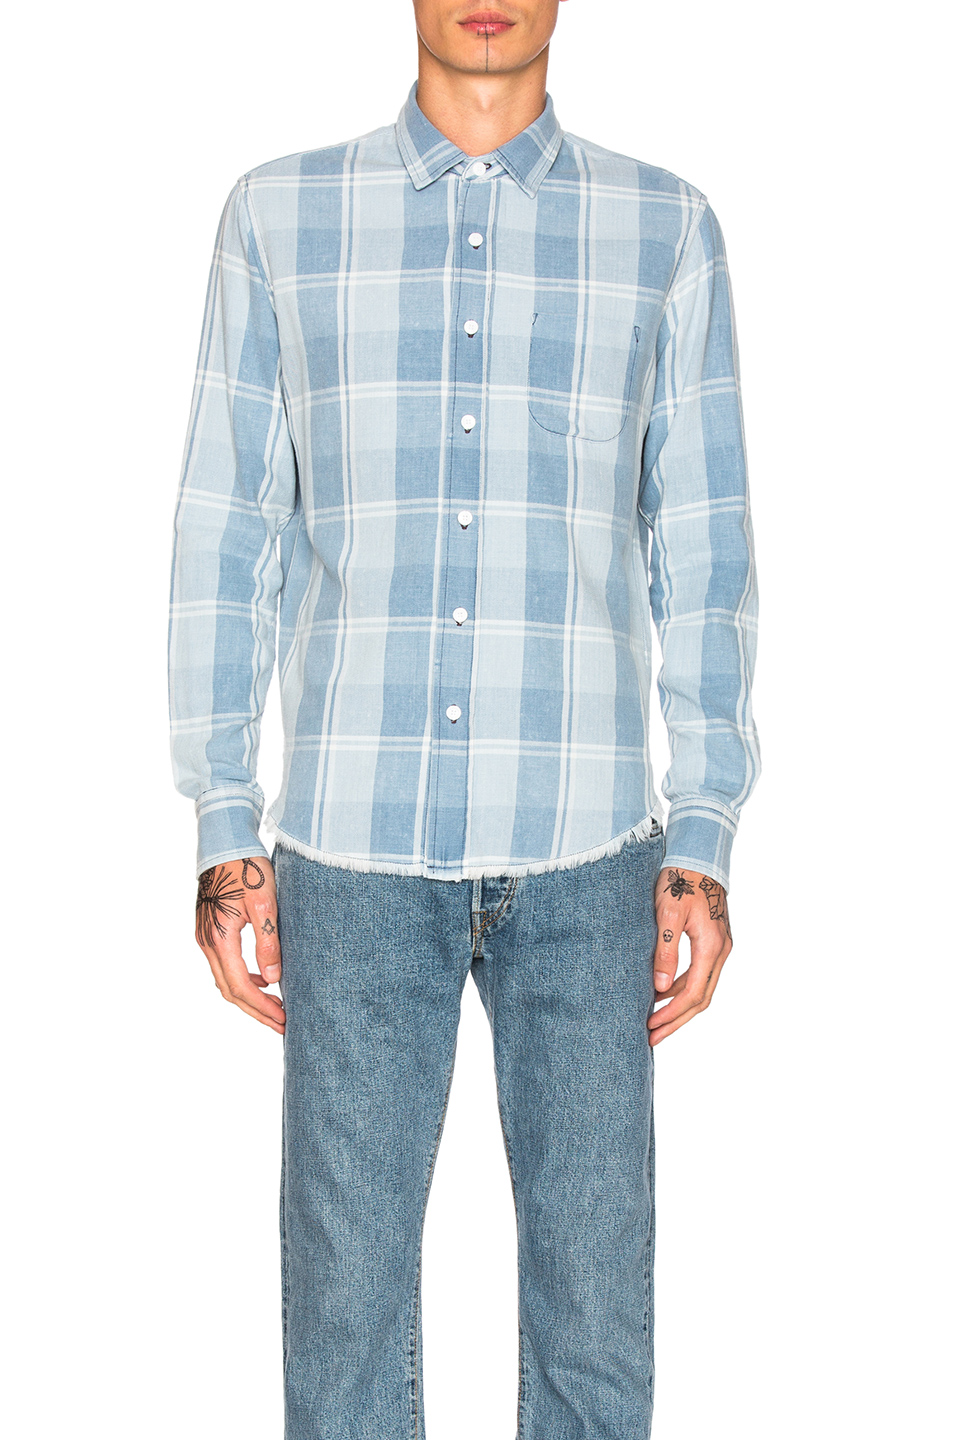 Simon Miller Pismo Shirt in Blue,Checkered & Plaid